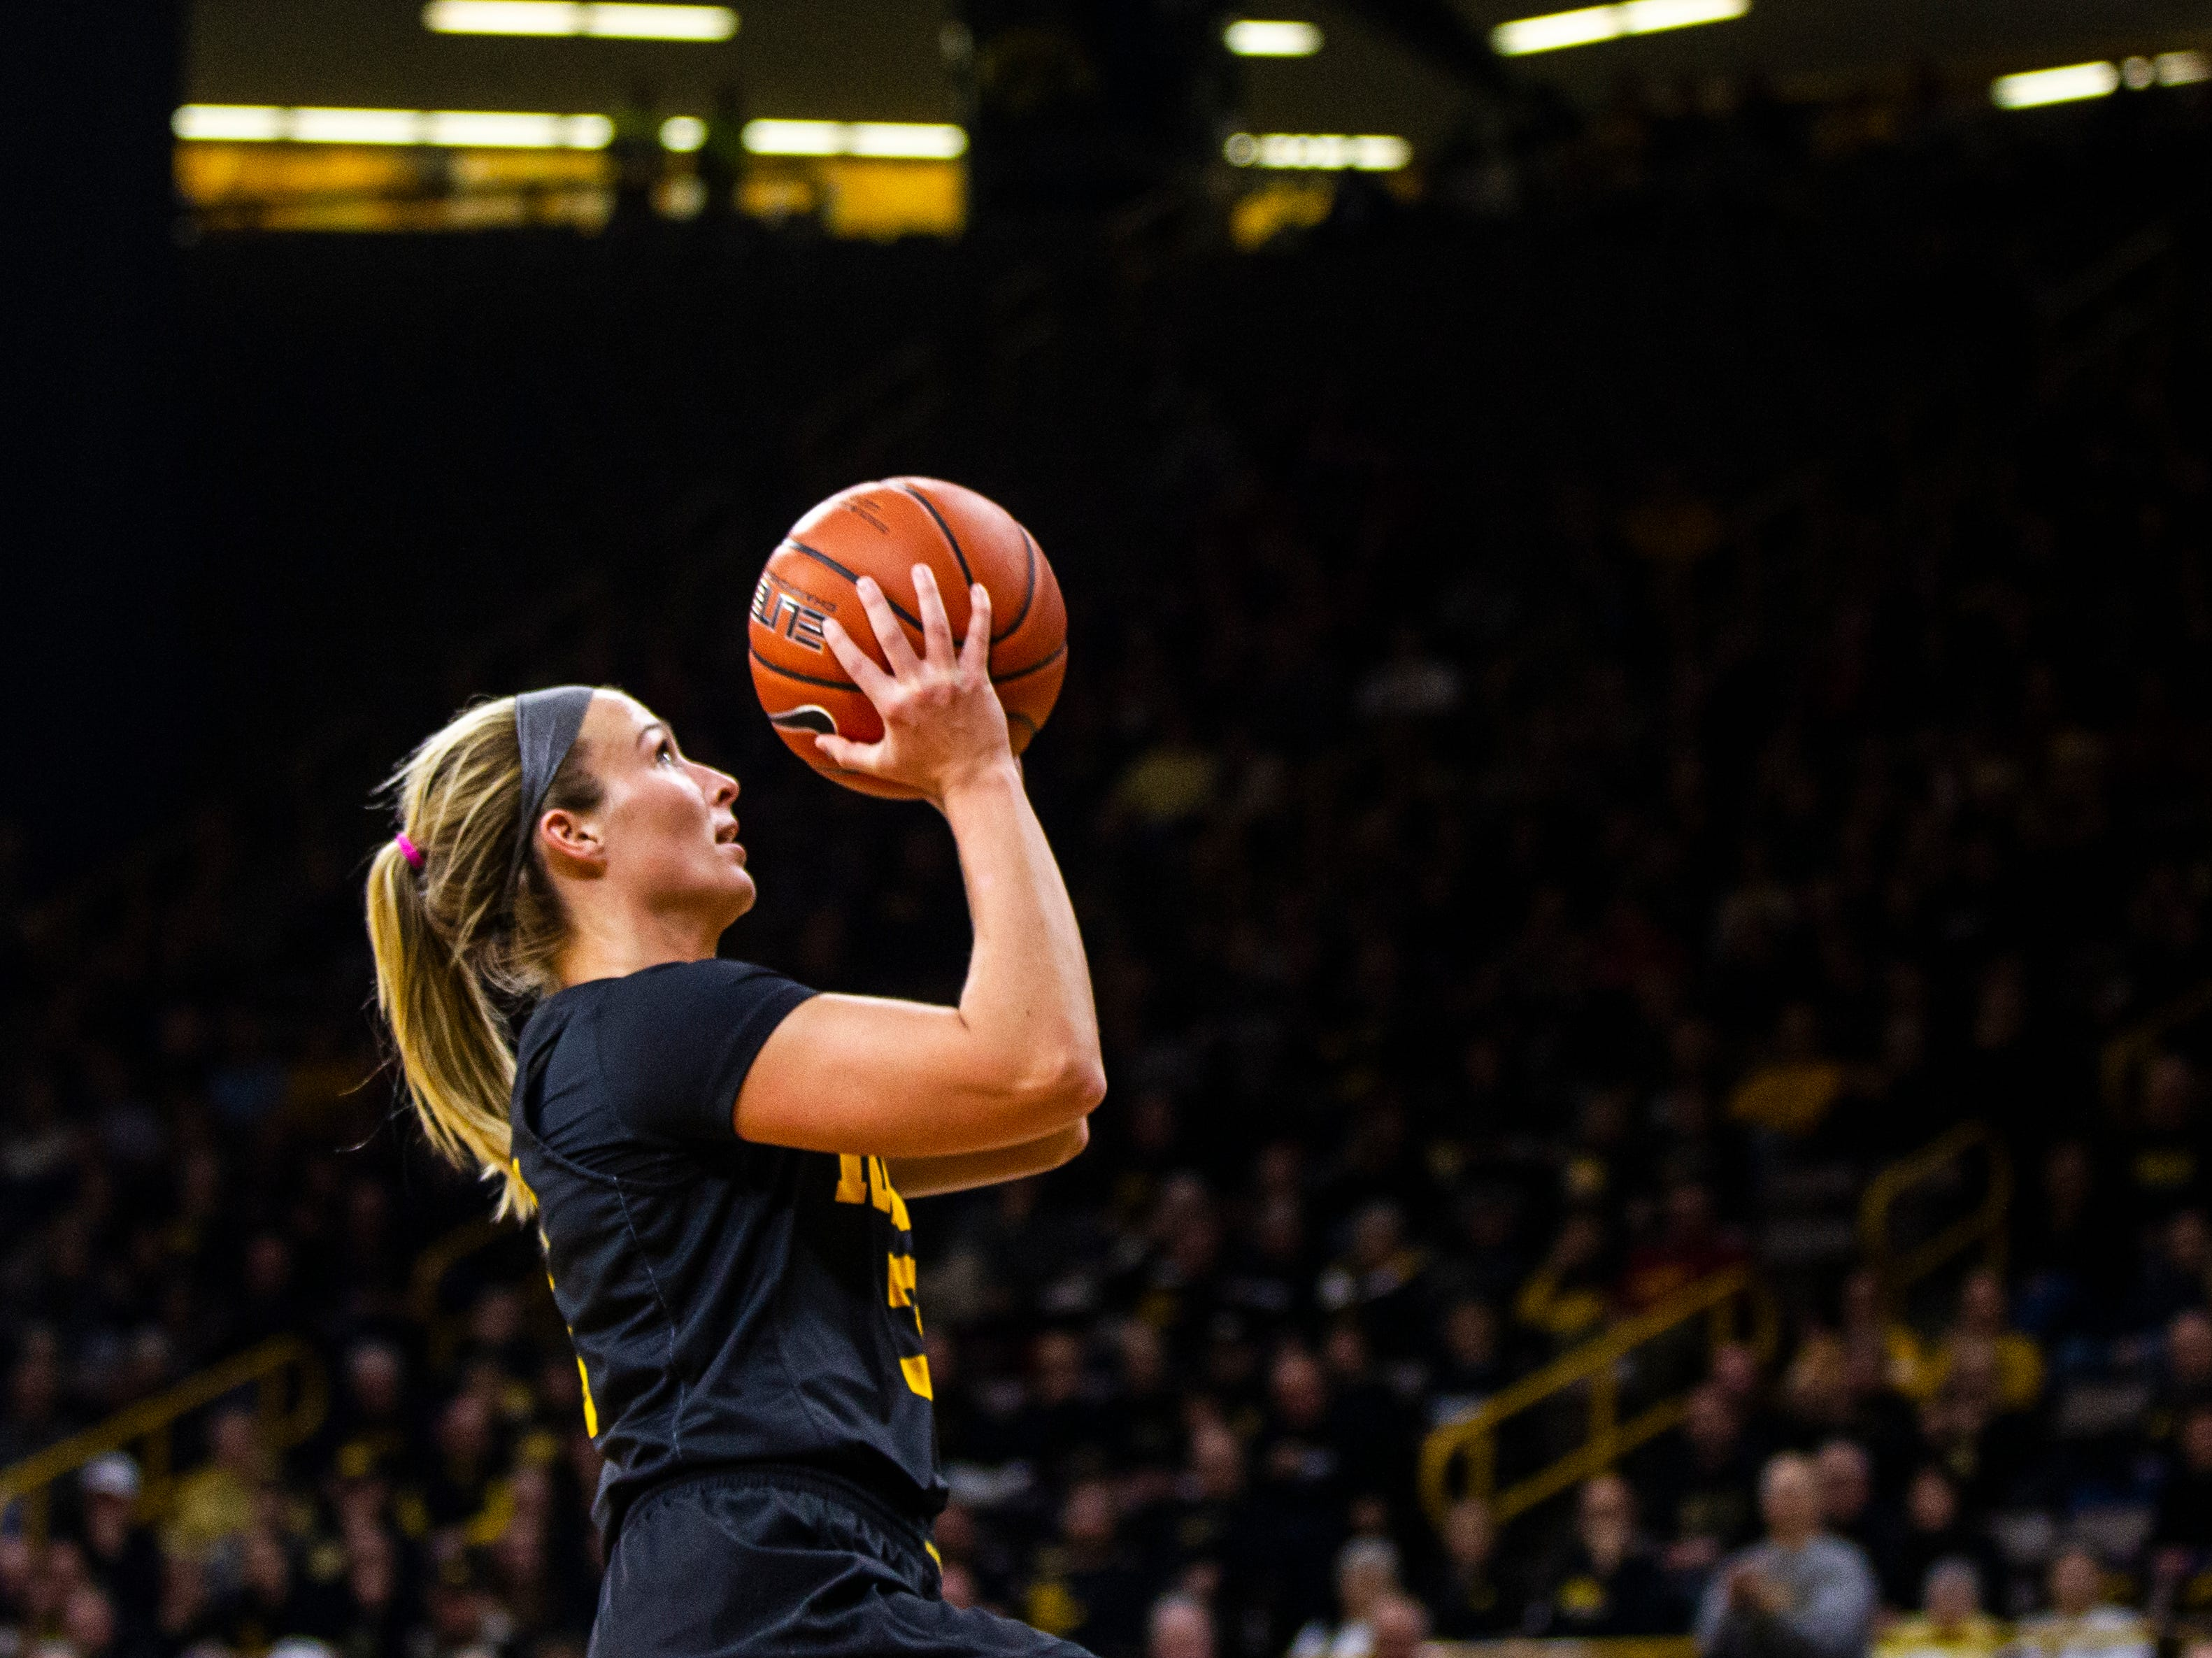 Iowa guard Makenzie Meyer (3) attempts a basket during a Cy-Hawk series NCAA women's basketball game on Wednesday, Dec. 5, 2018, at Carver-Hawkeye Arena in Iowa City.